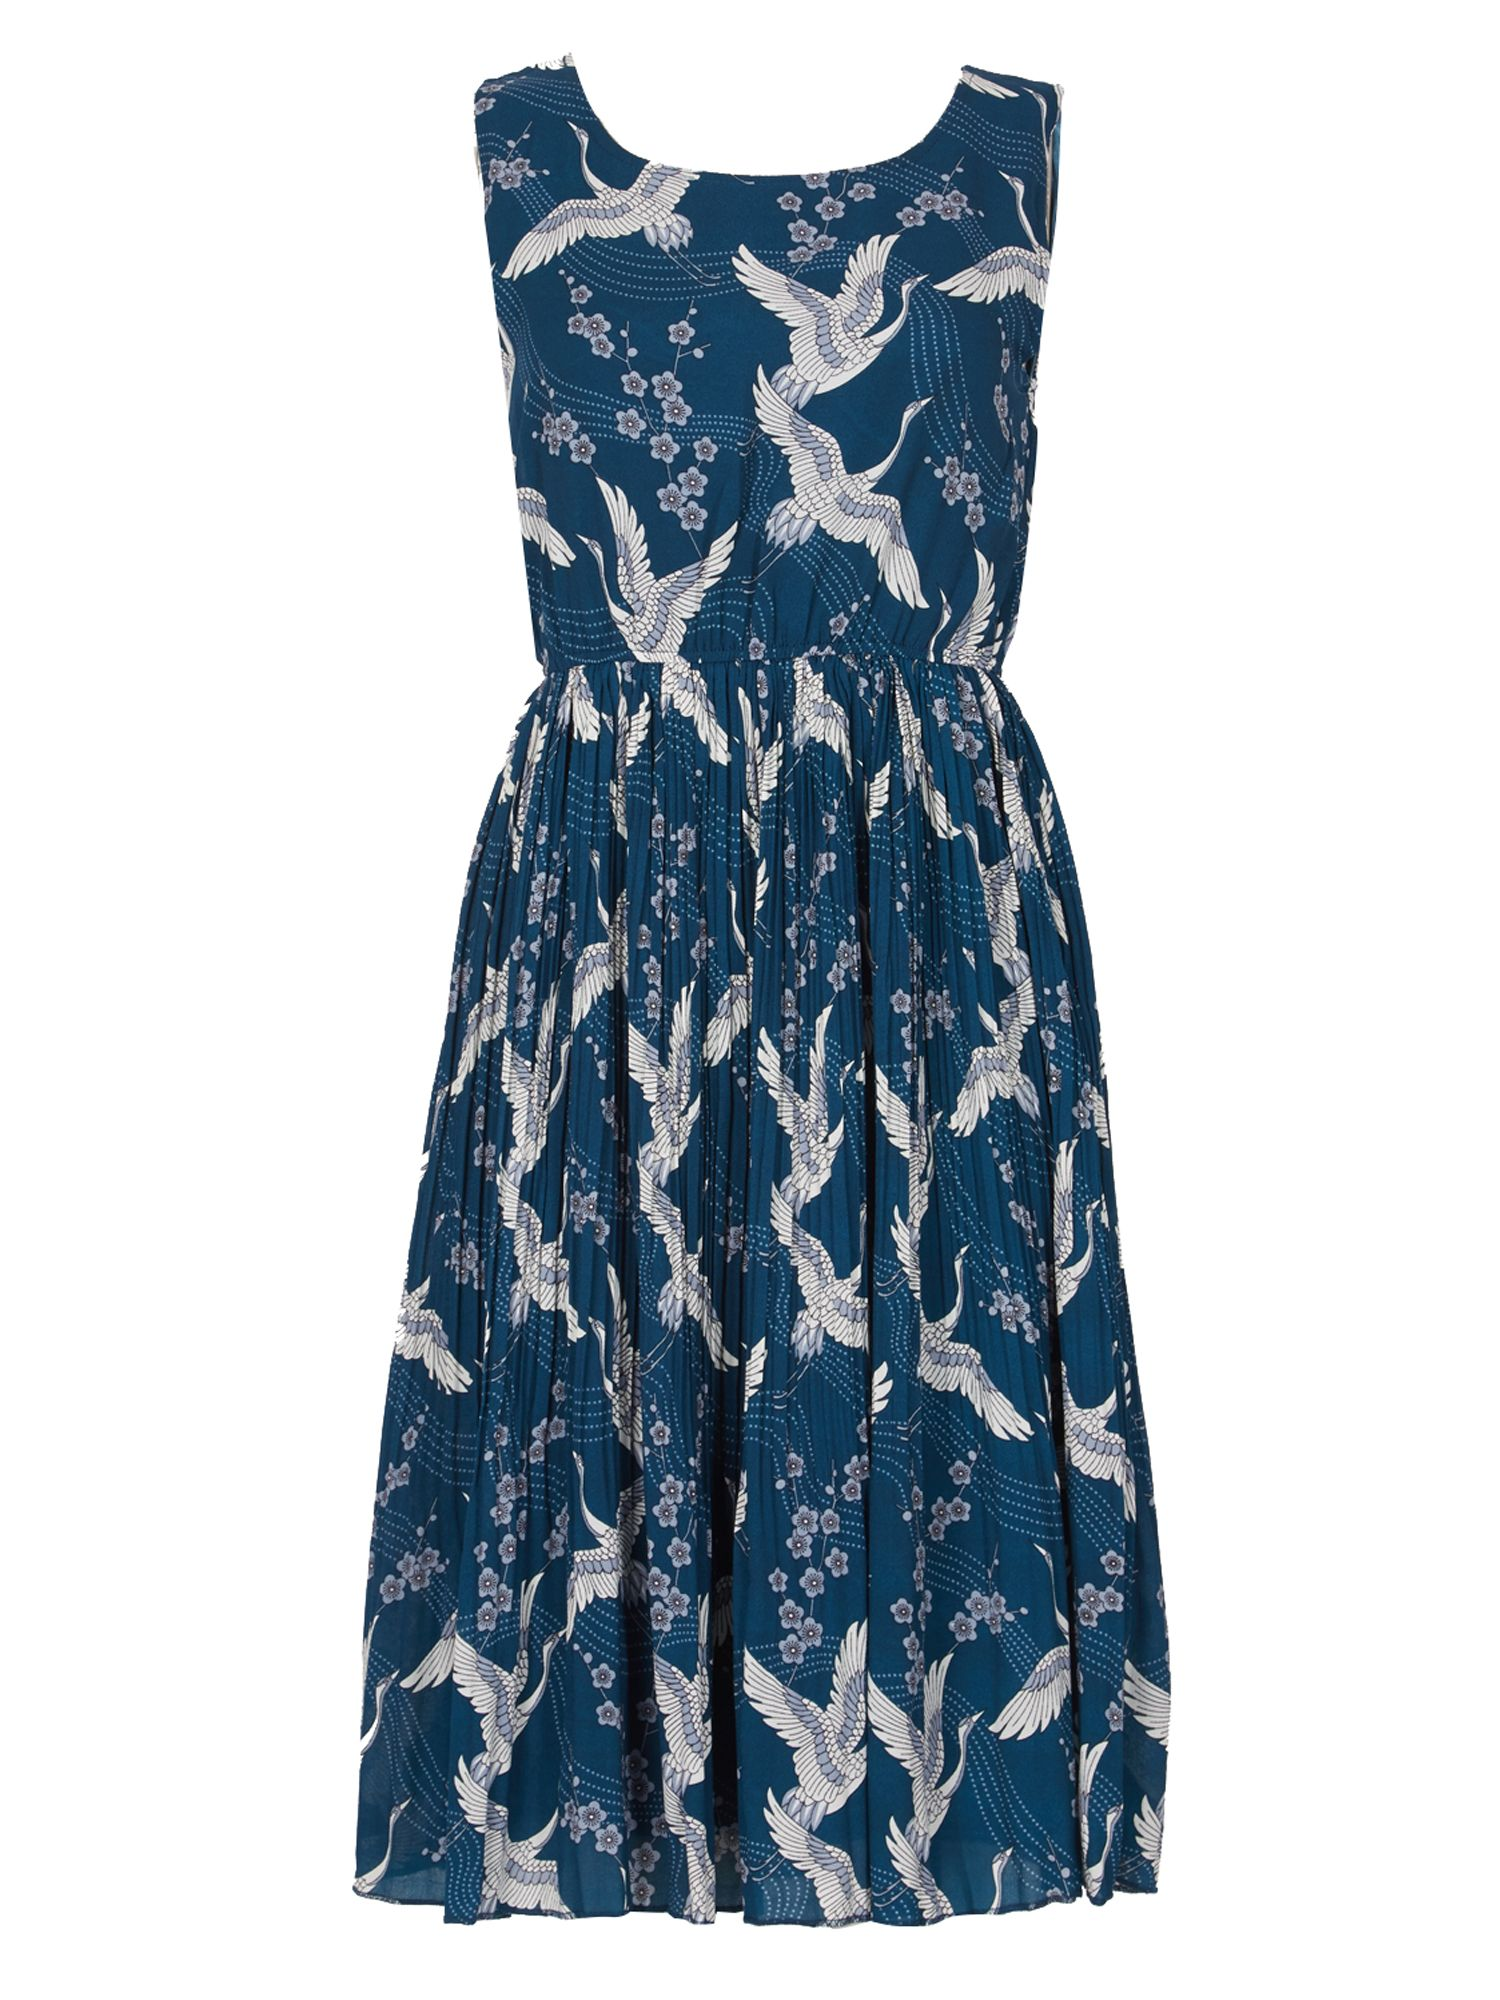 TENKI Sleeveless Bird Print Midi Dress, Teal